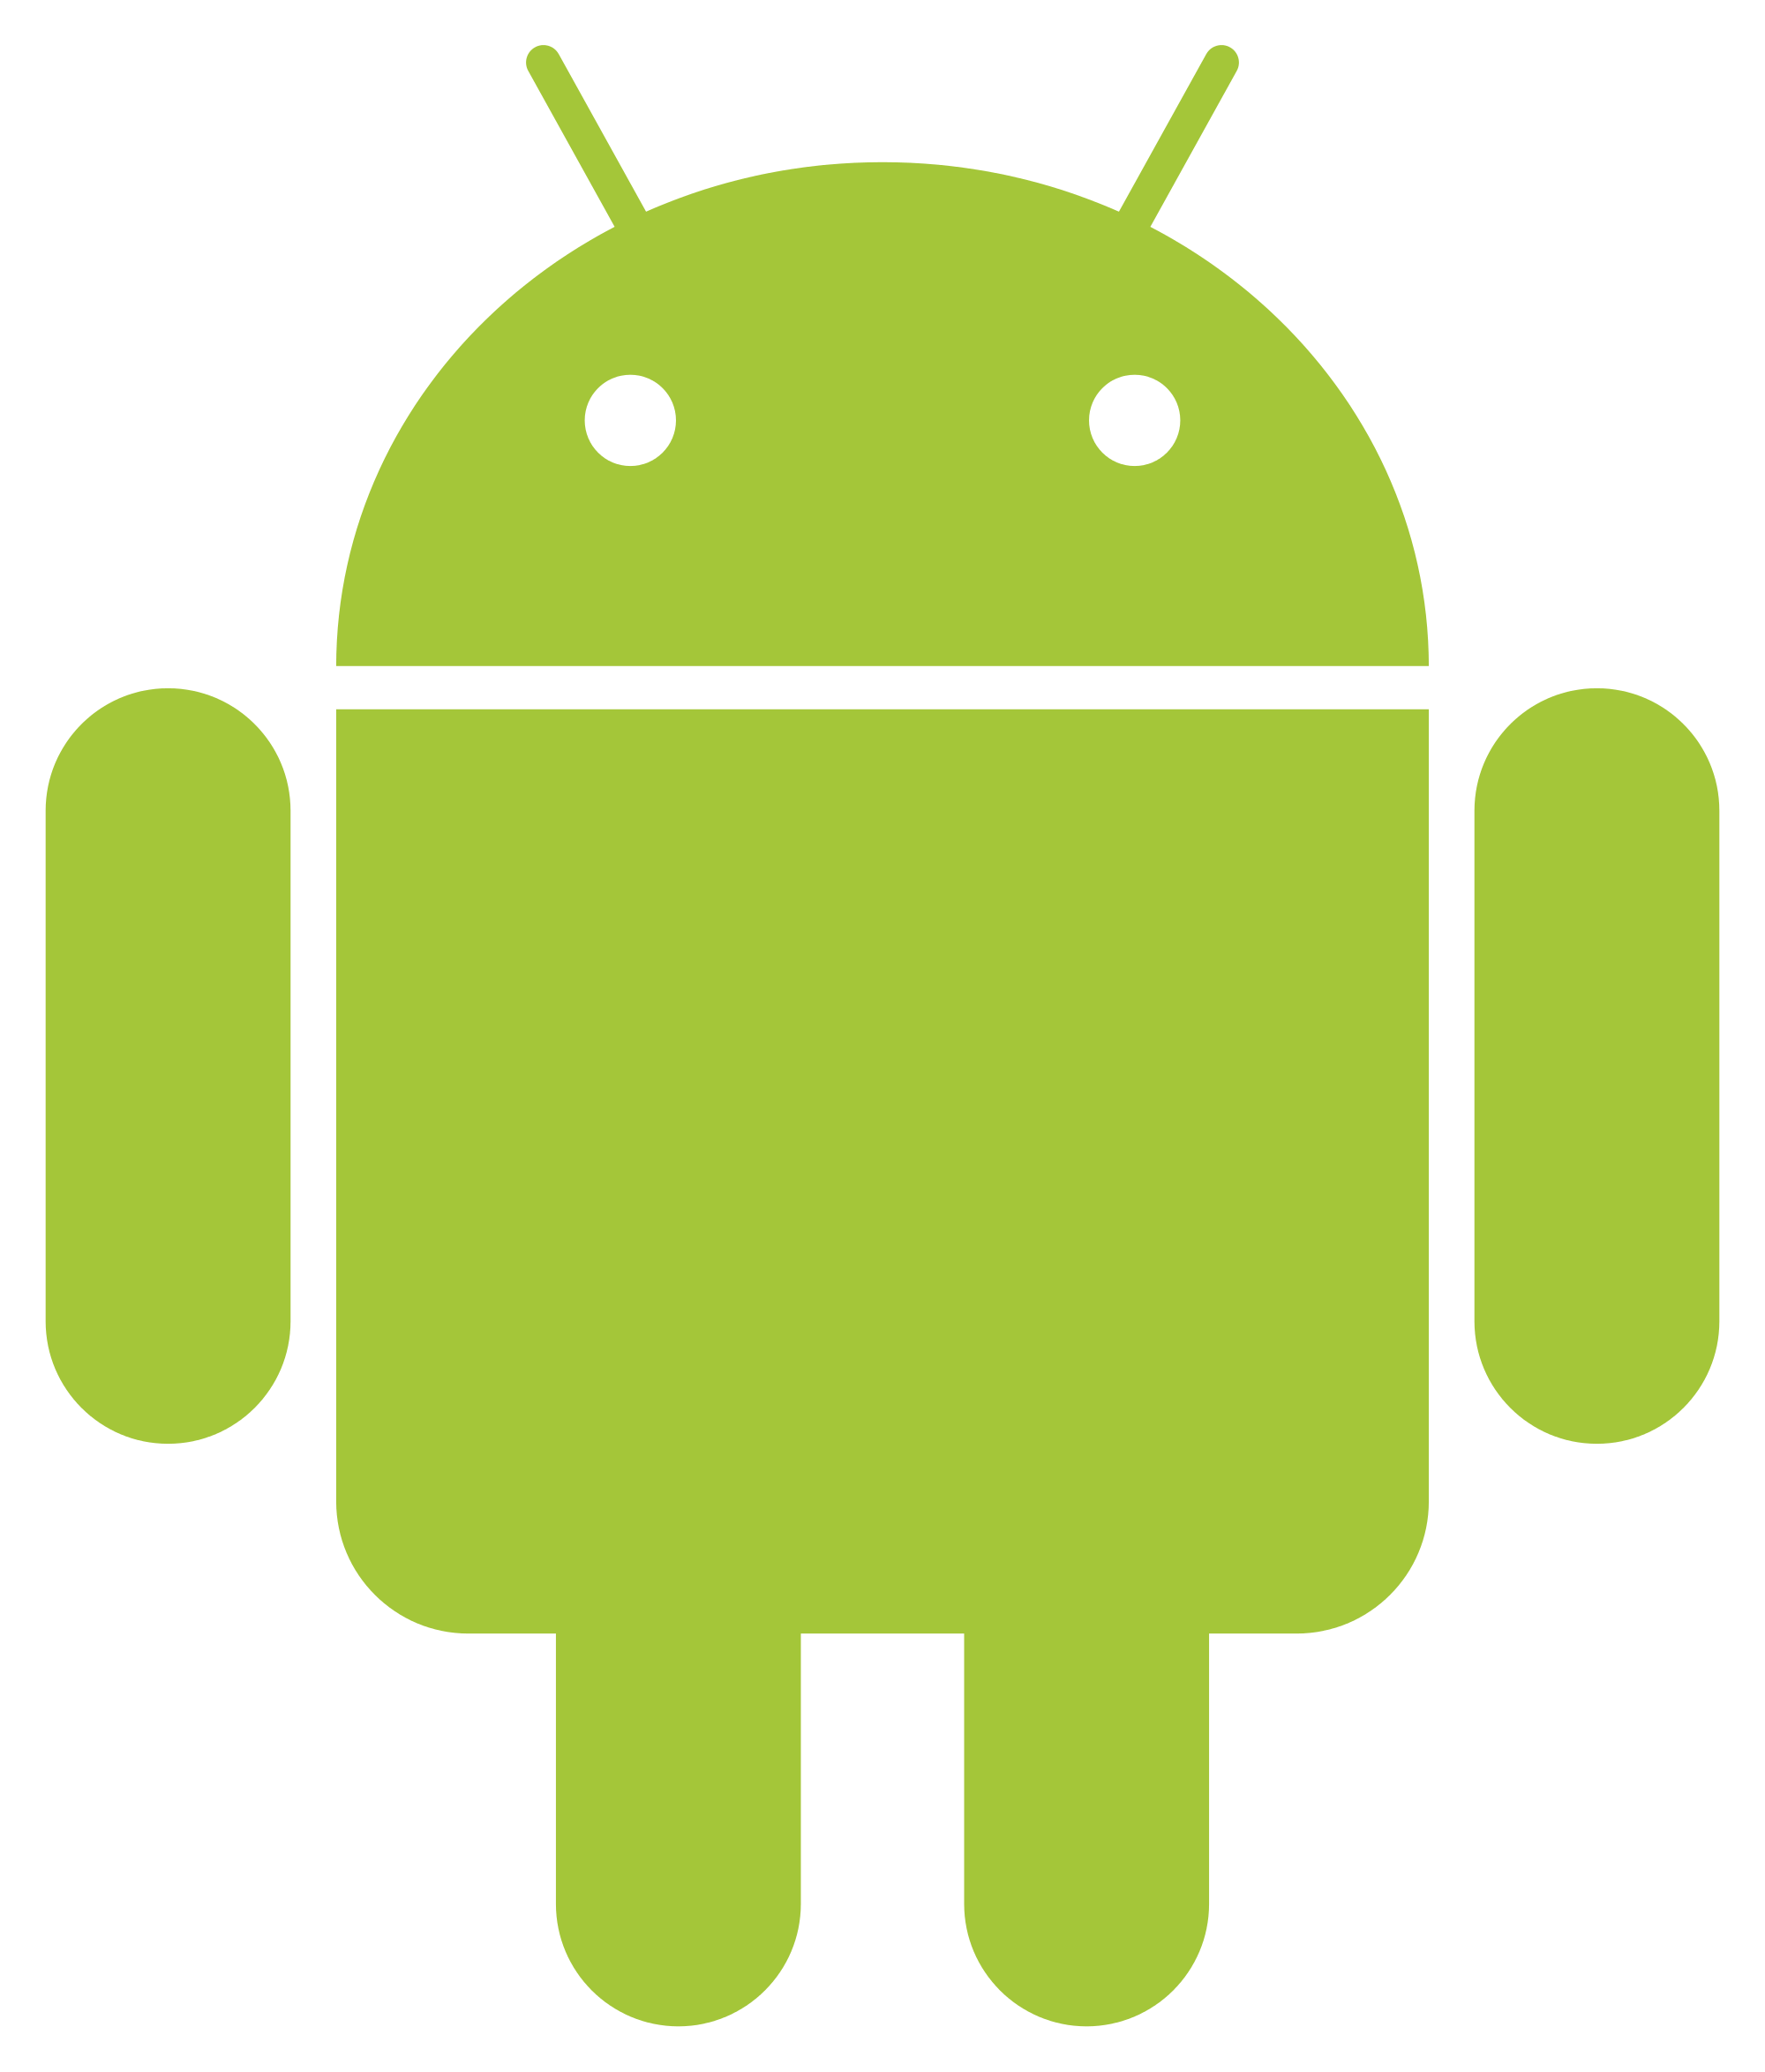 Android os clipart #6